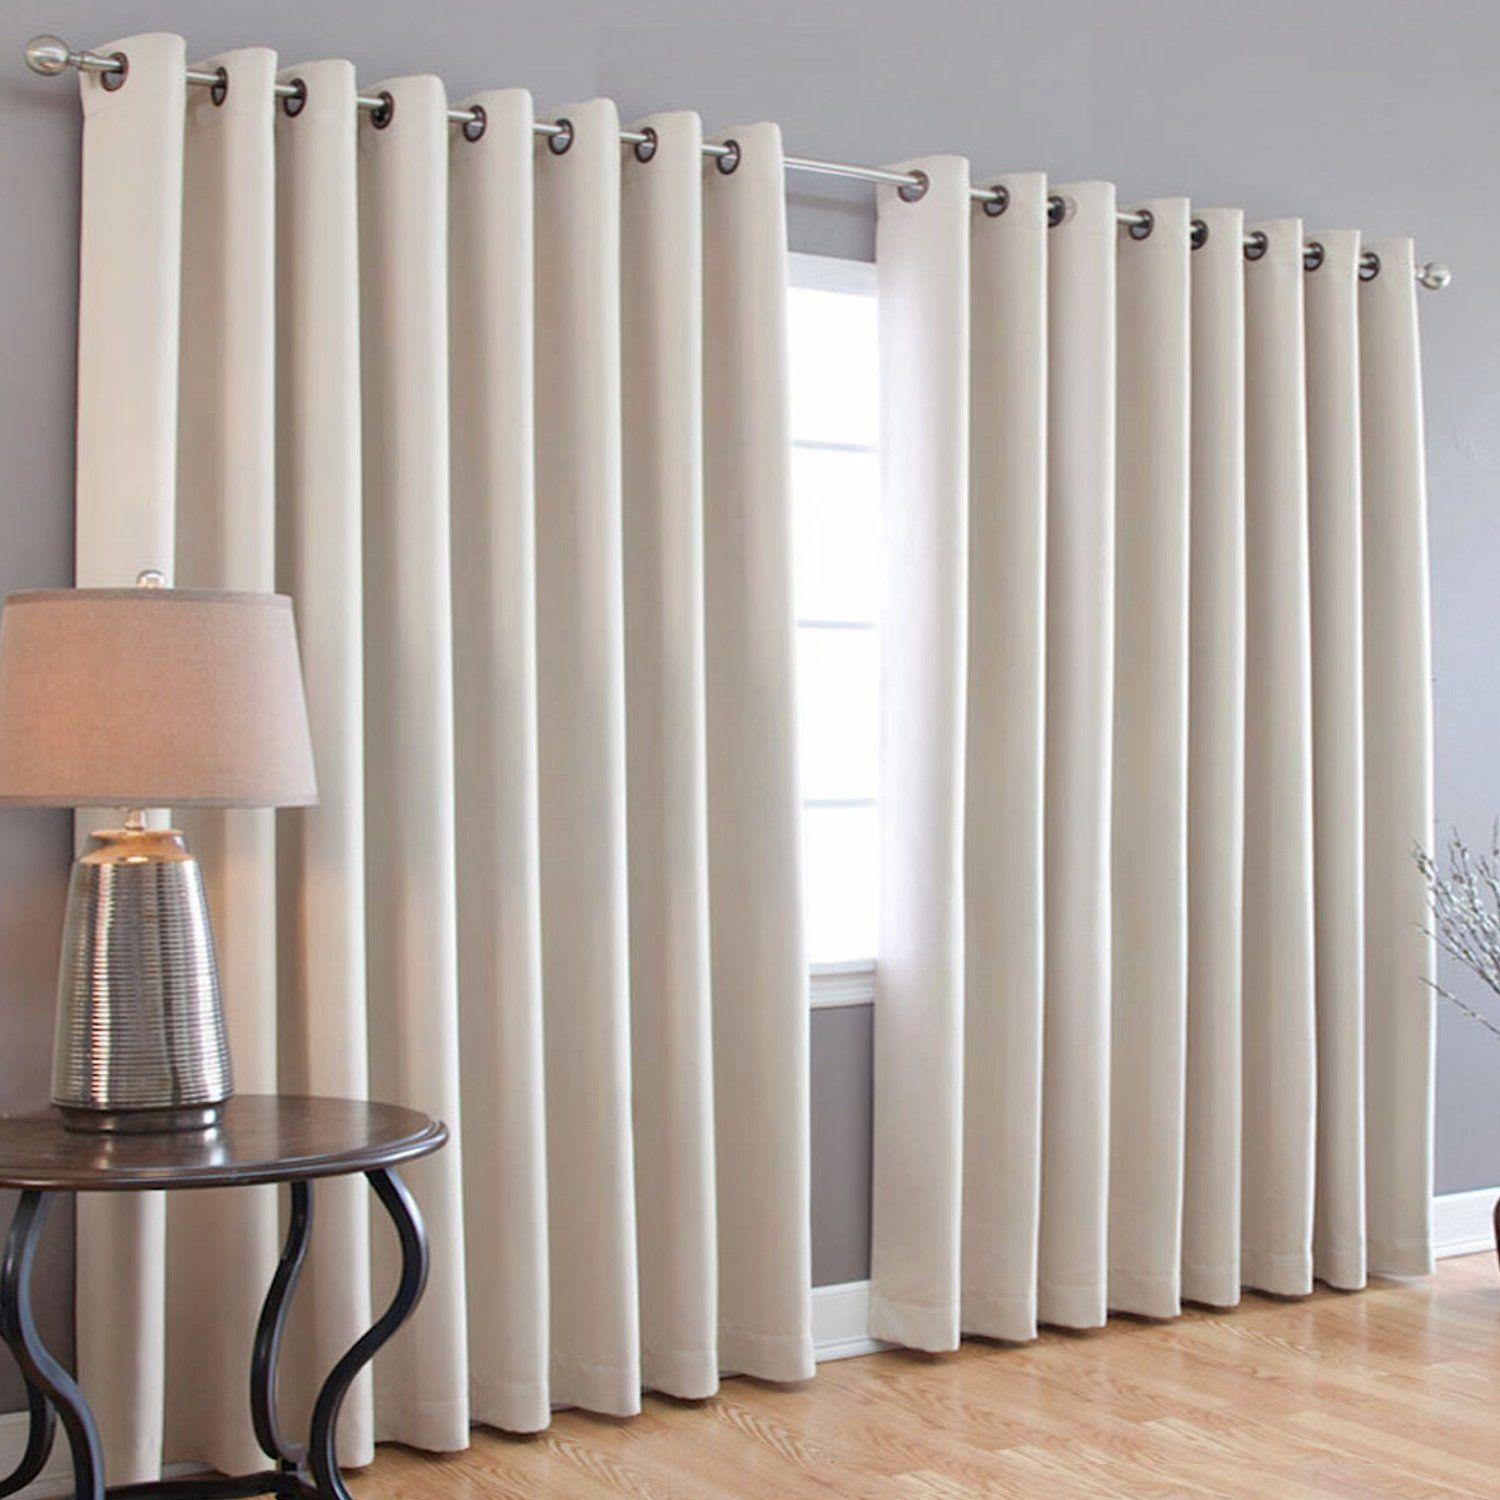 Modern curtain designs for bedroom black out curtains bedroom  home decor d  pinterest  bedrooms